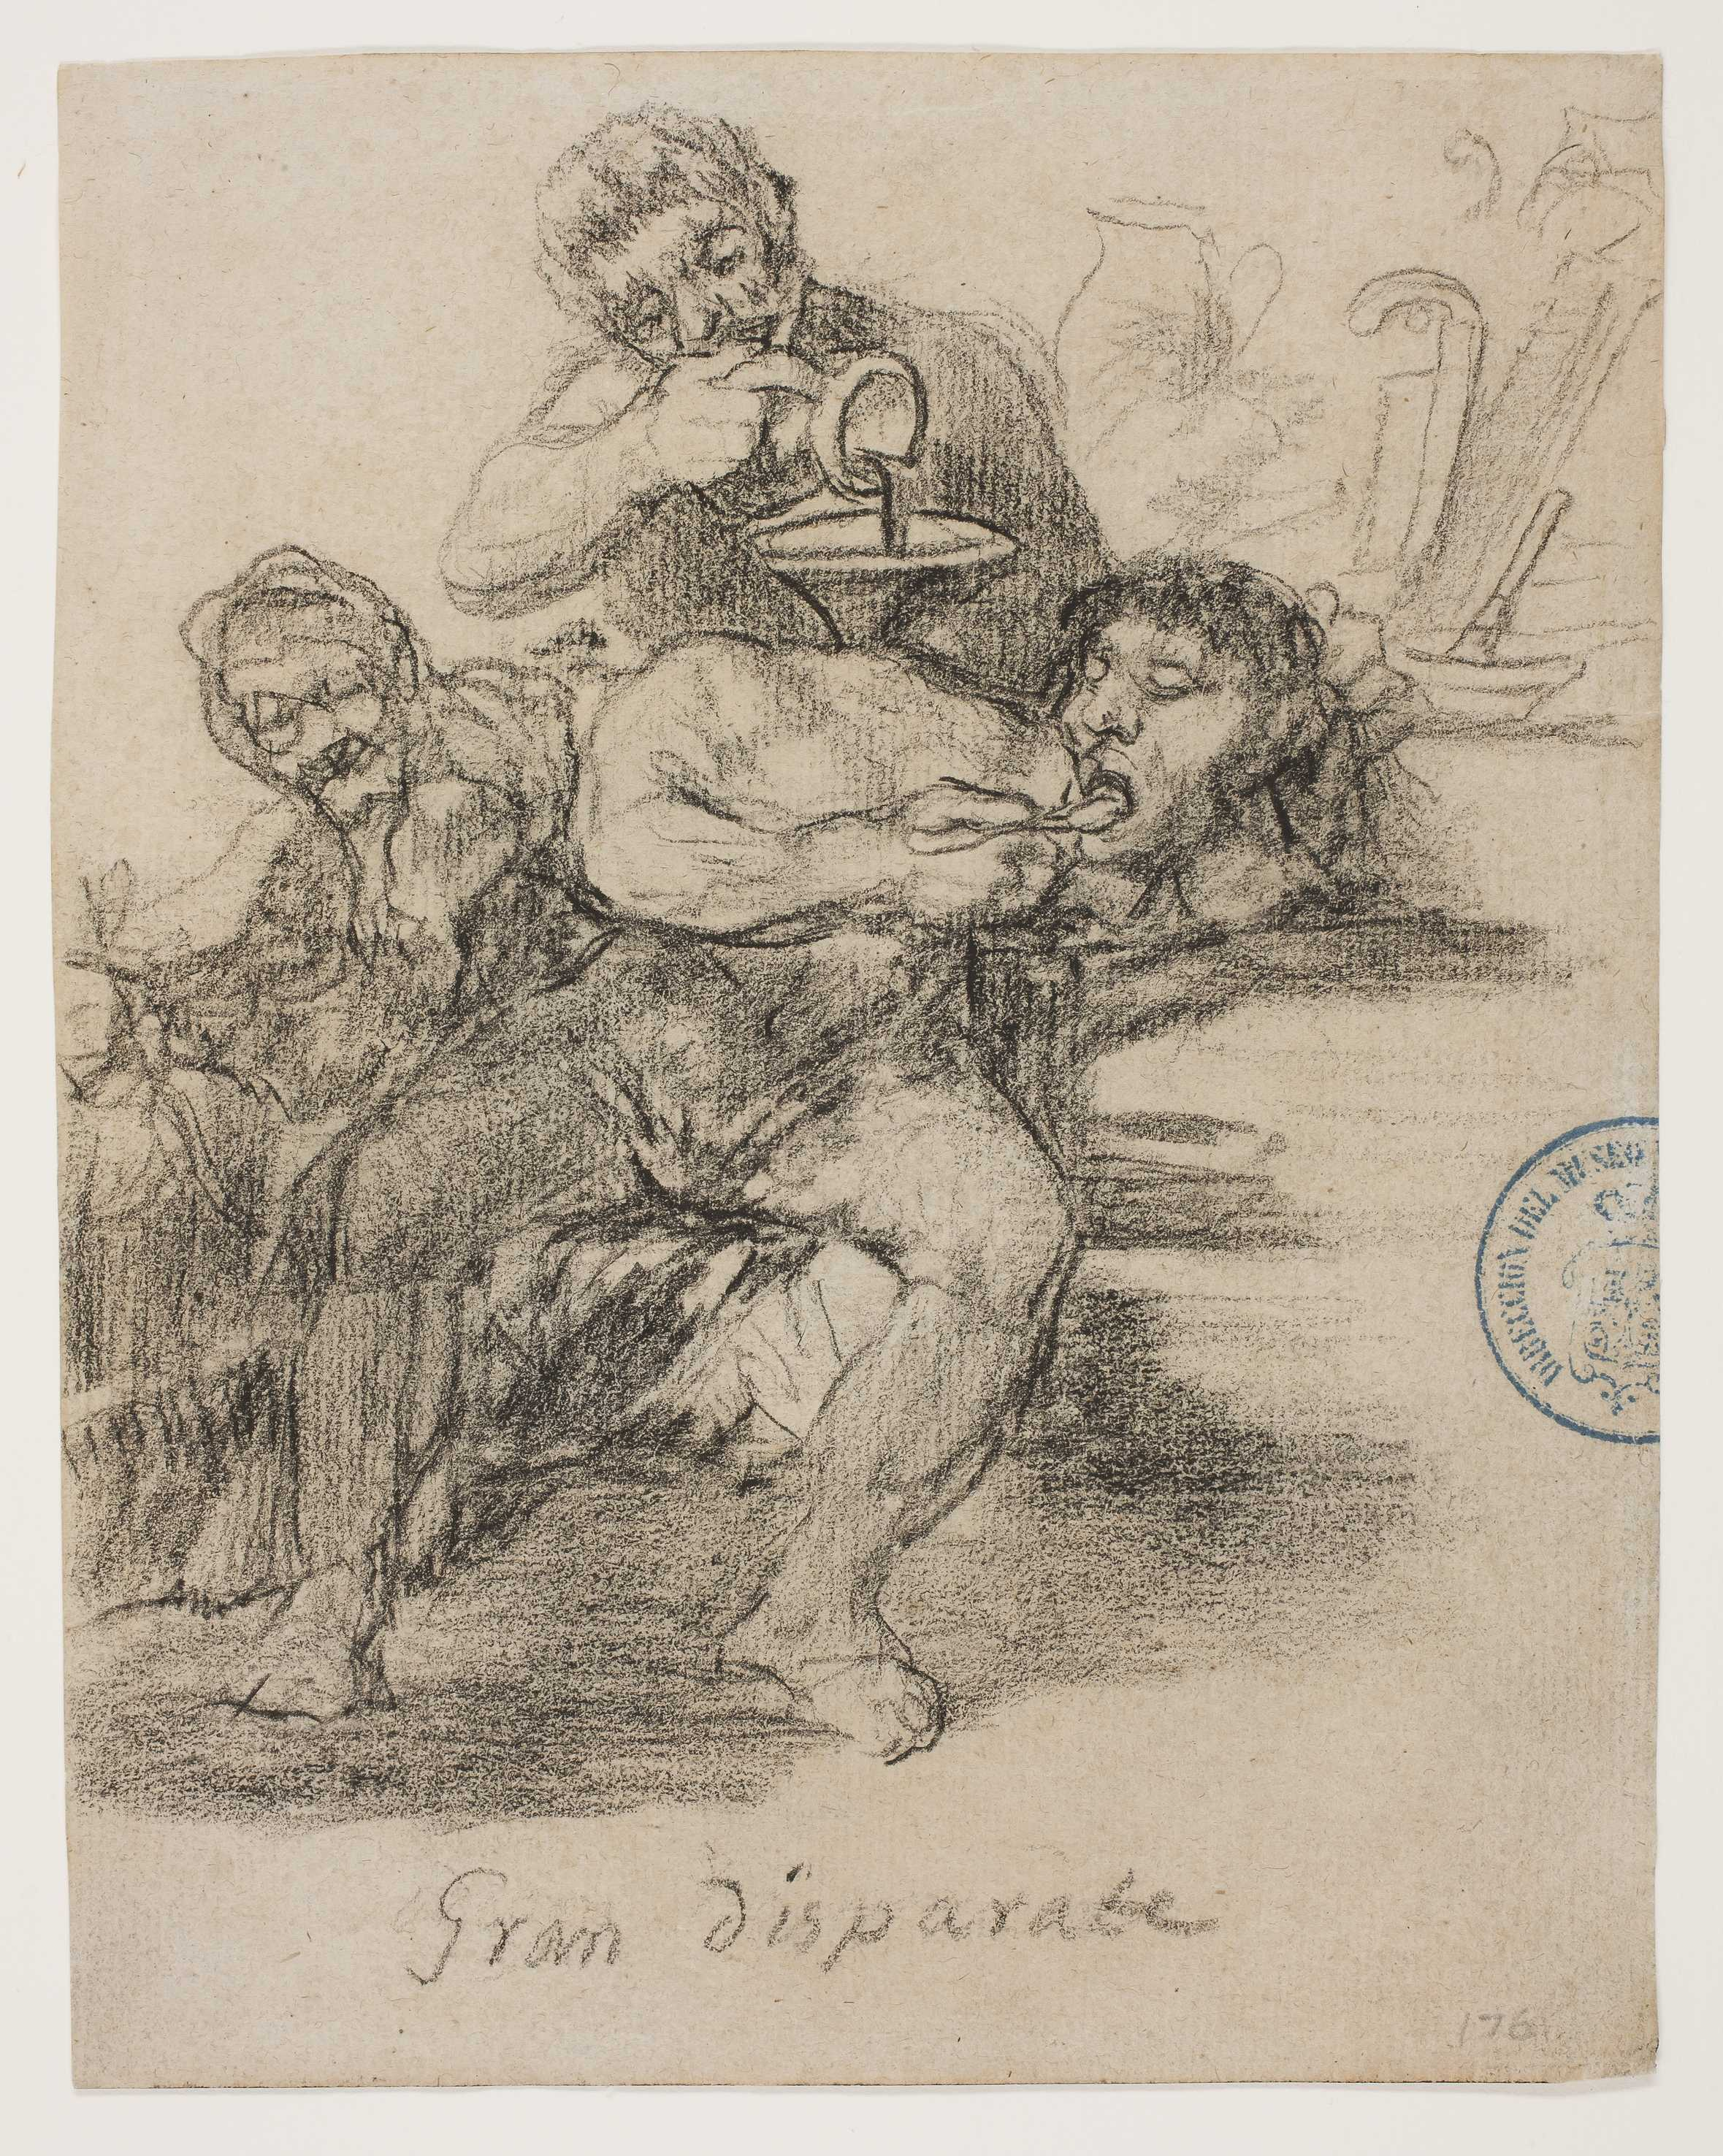 All That Remains Tour 2020 All That Remains Is my Willpower. Drawings by Goya. Museo del